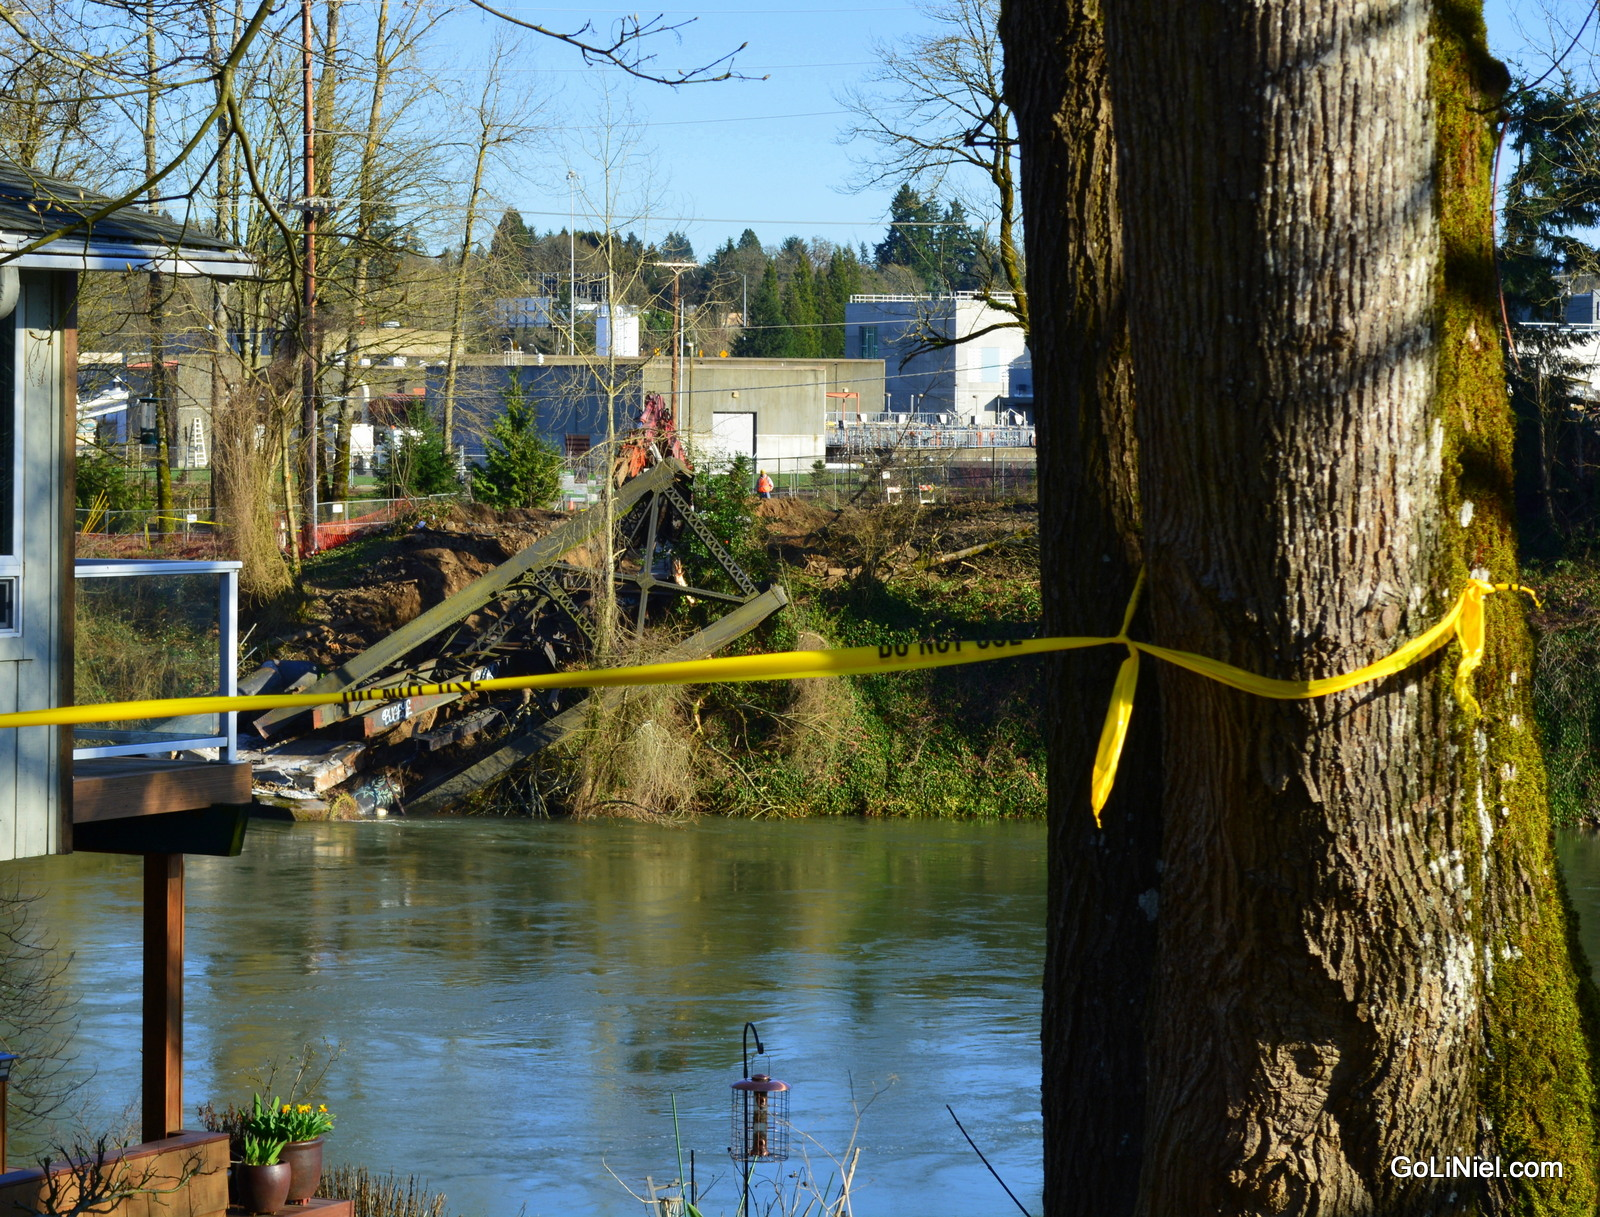 SP Bridge over Clackamas is nearly broken down and hauled away